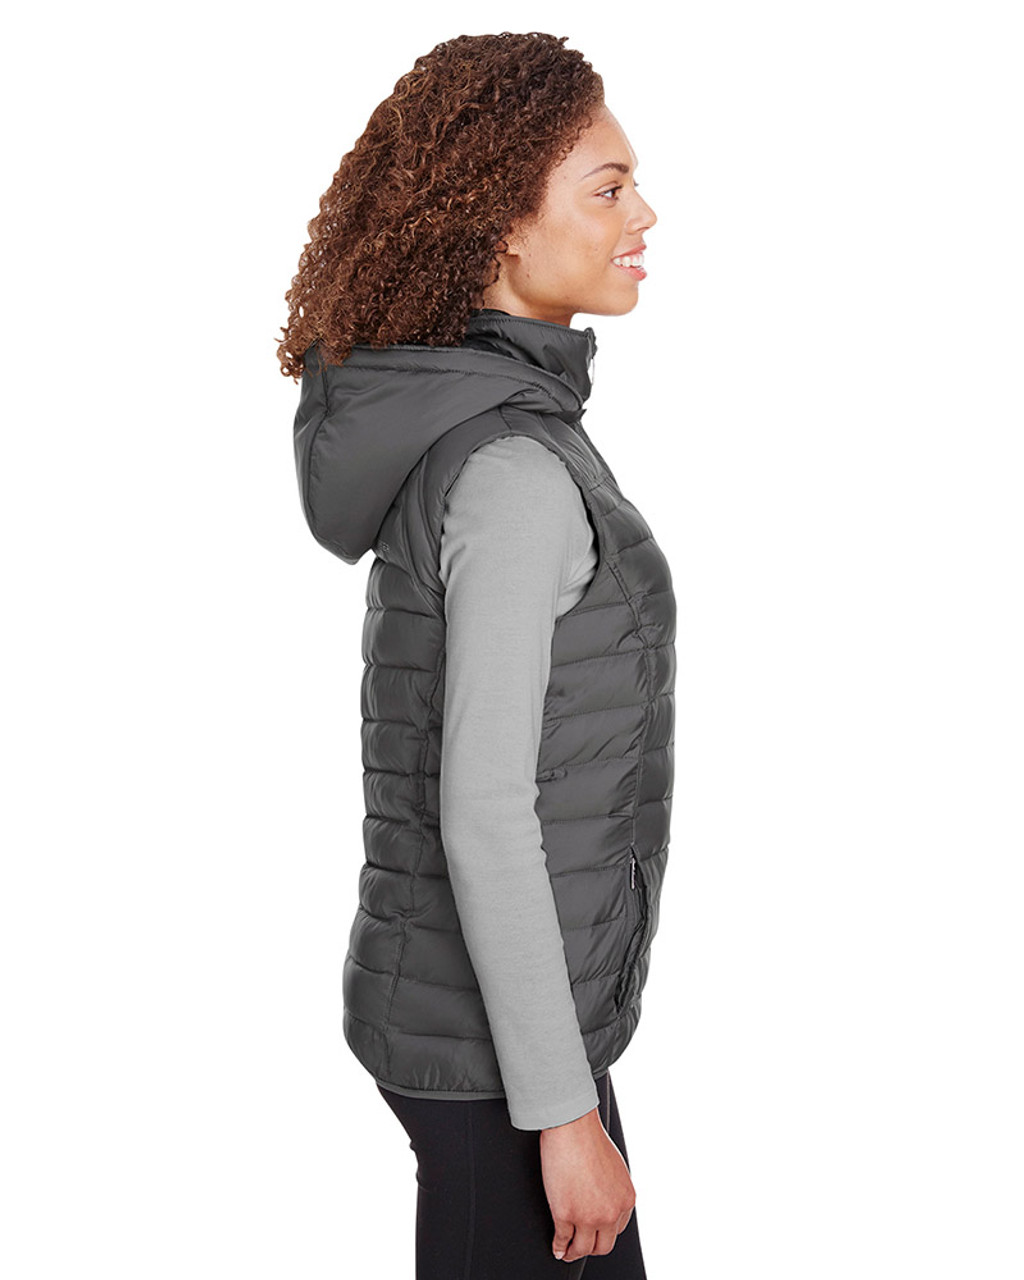 Polar - side, S16641 Spyder Ladies' Supreme Puffer Vest | Blankclothing.ca